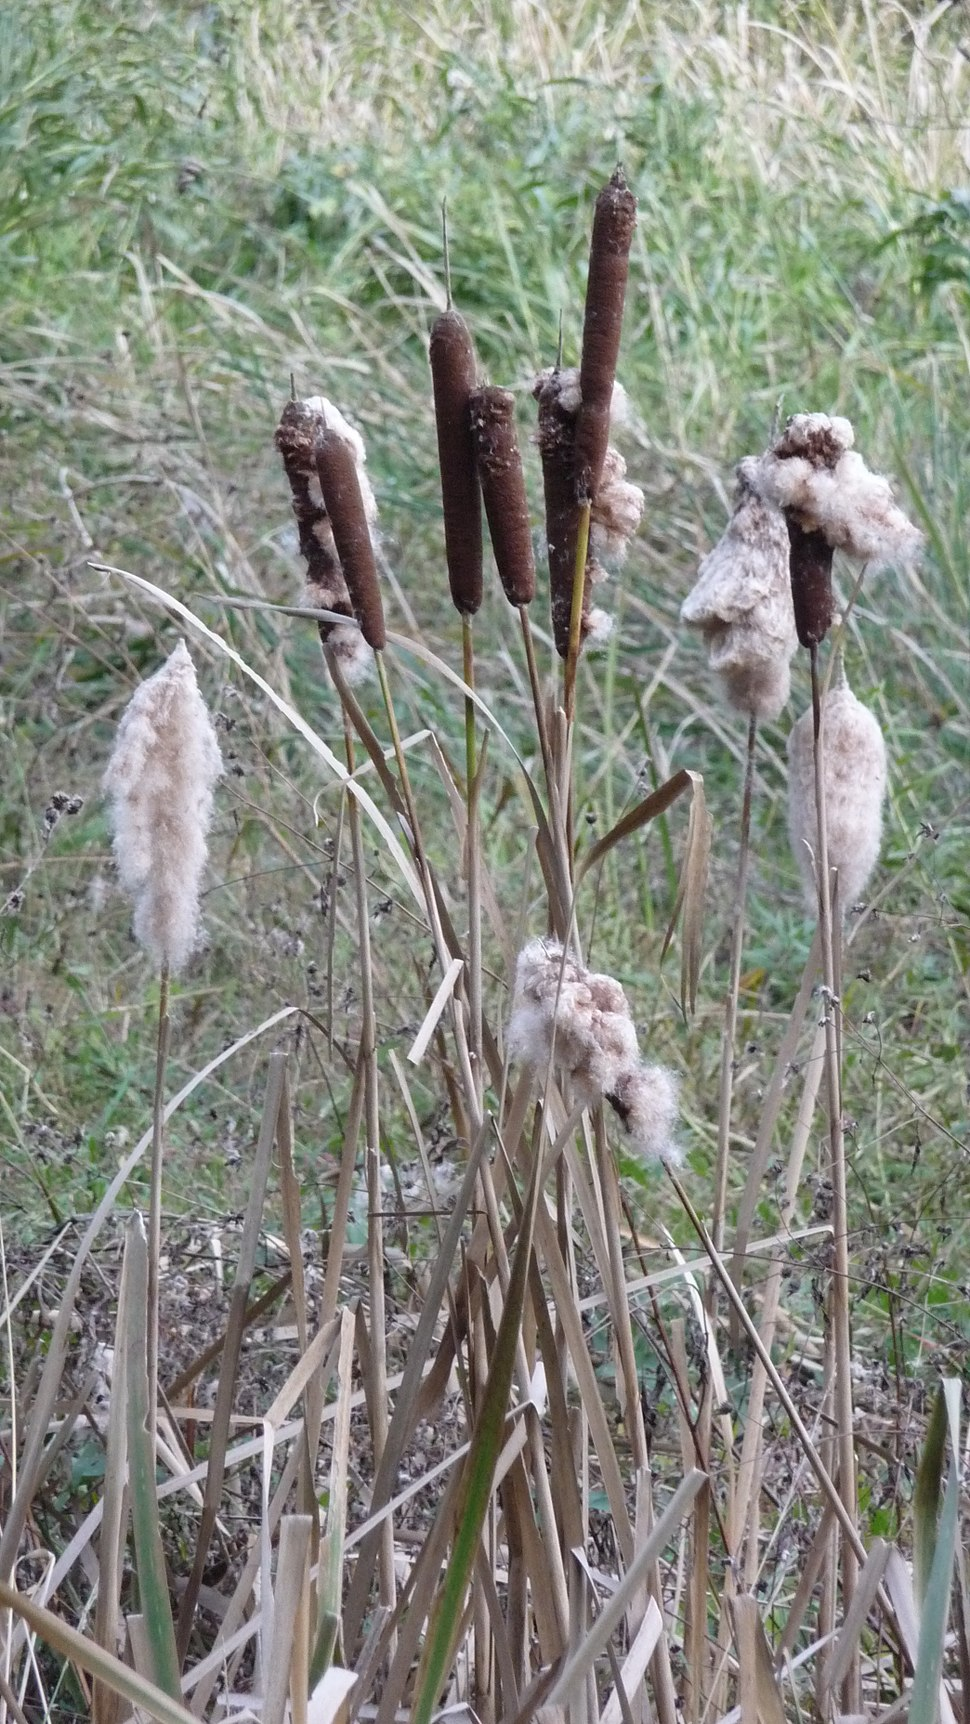 Typha with-without cotton like seeds